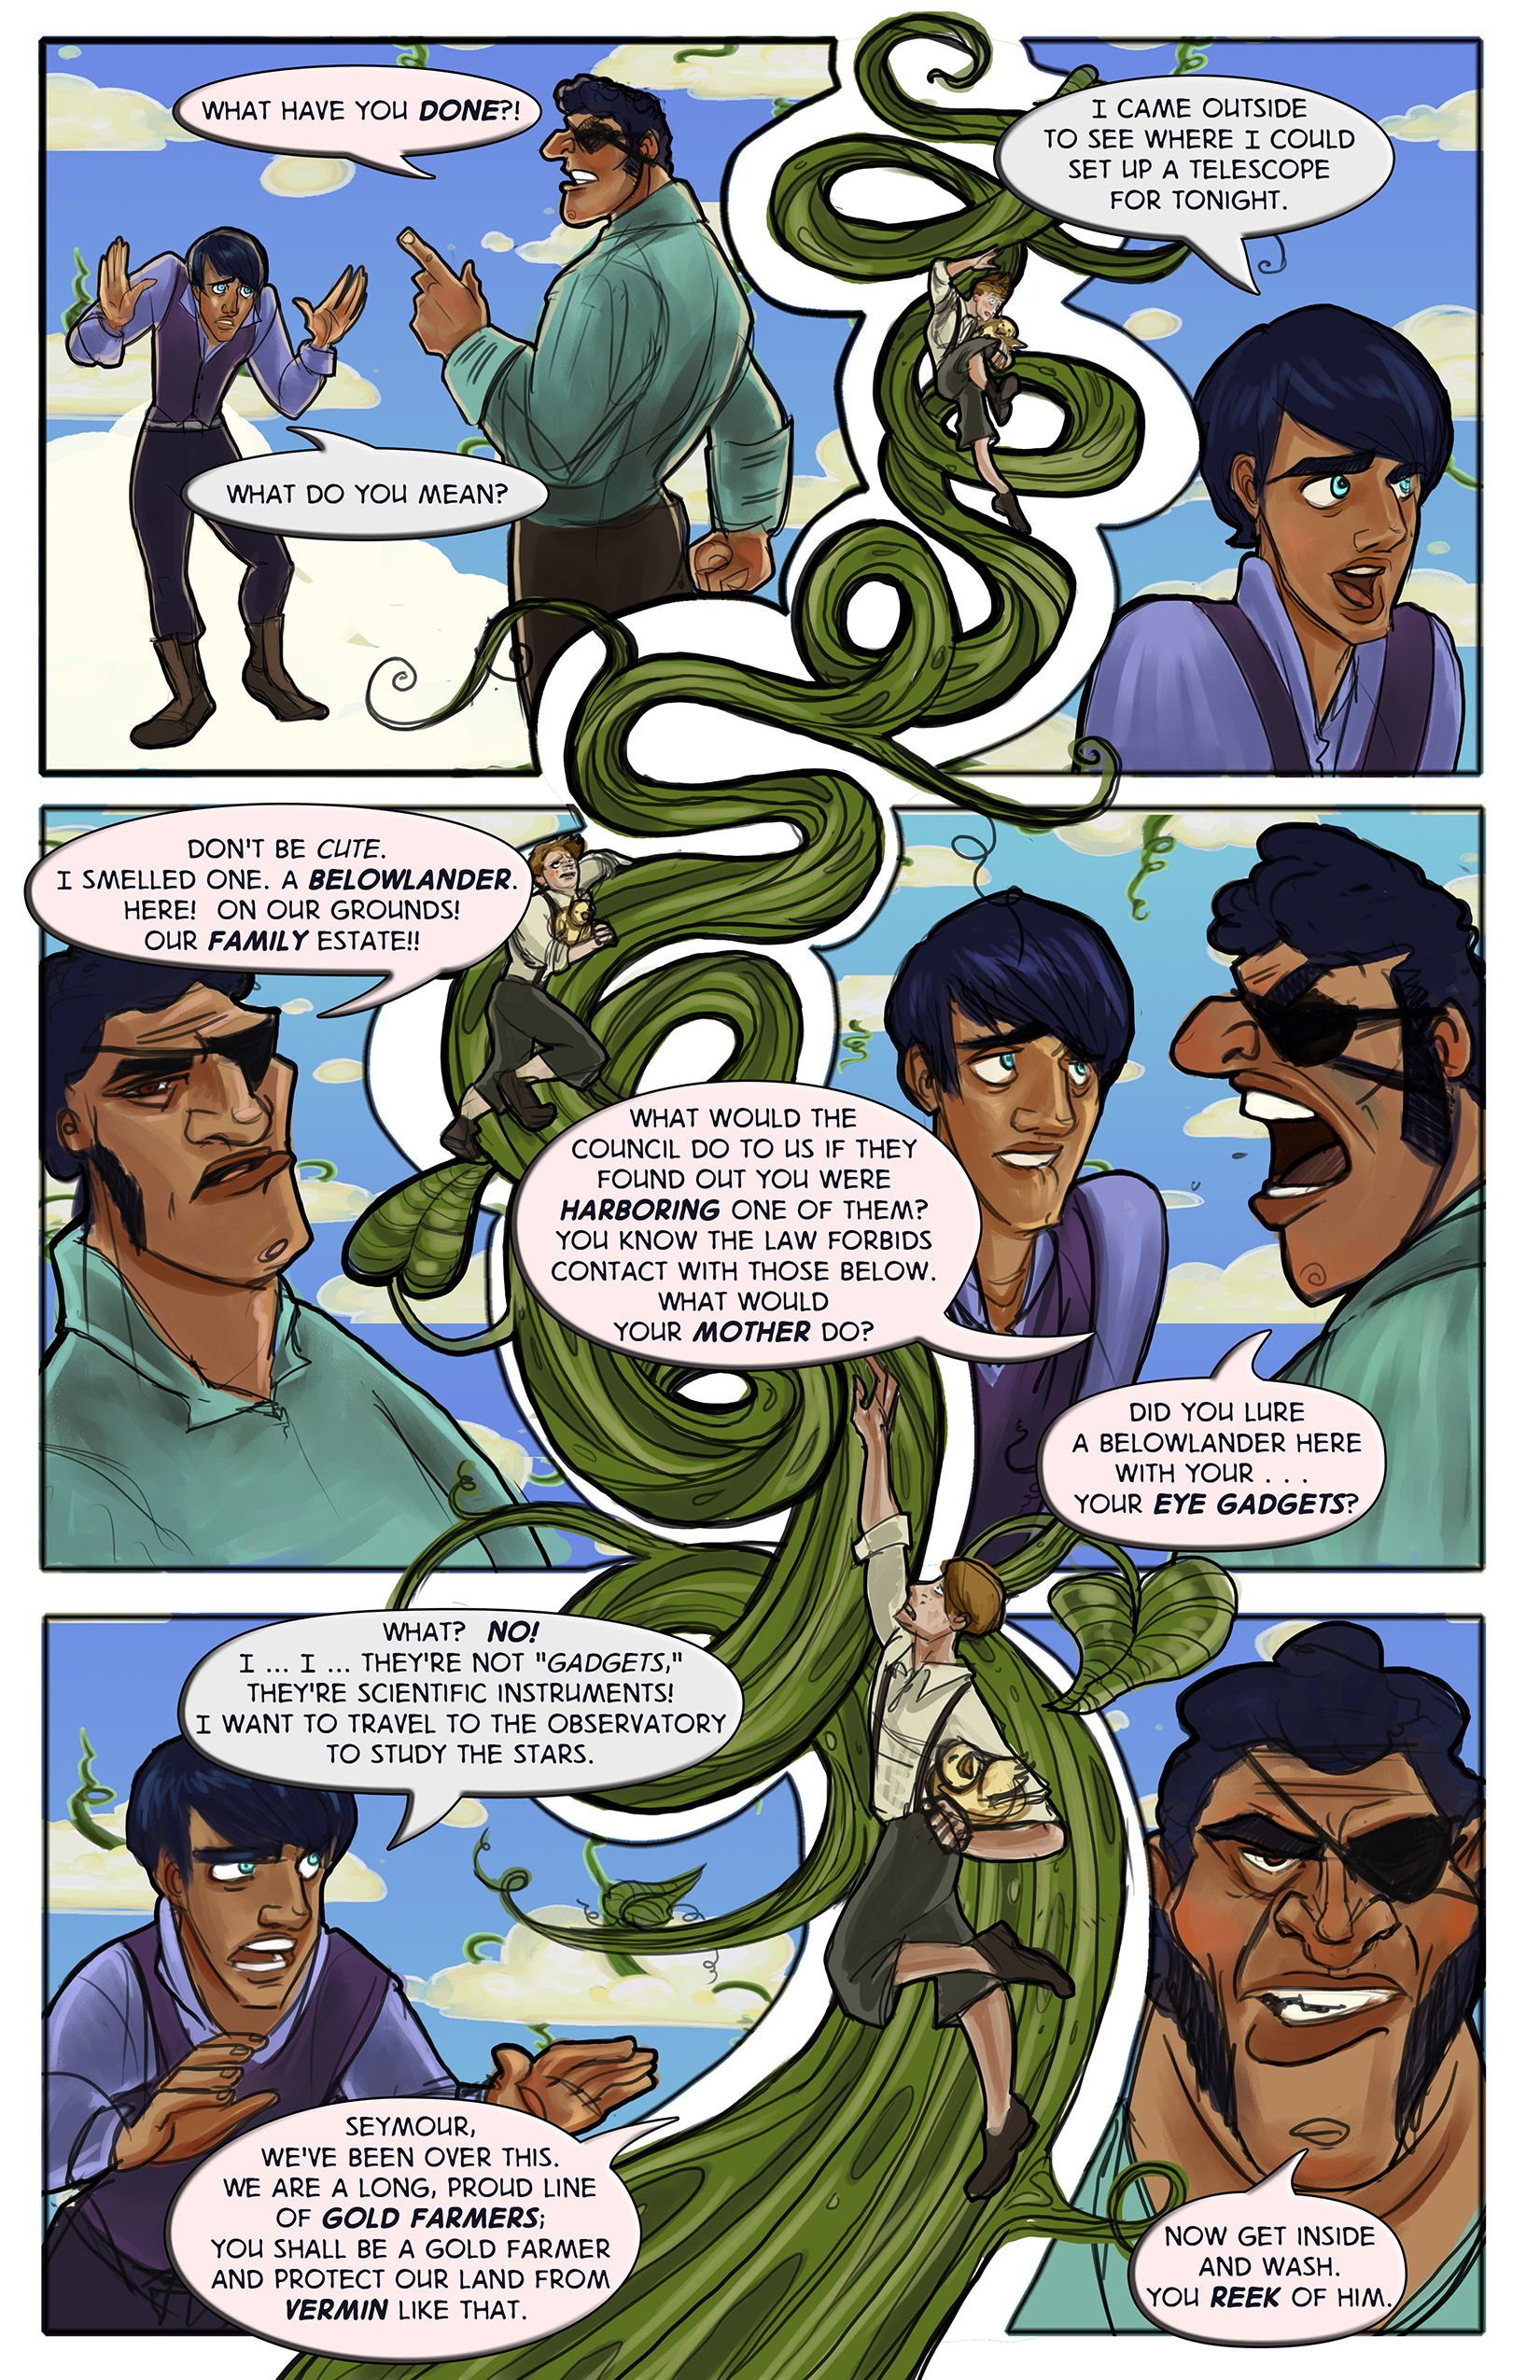 The Tale of Seymour Deeply - Page 5